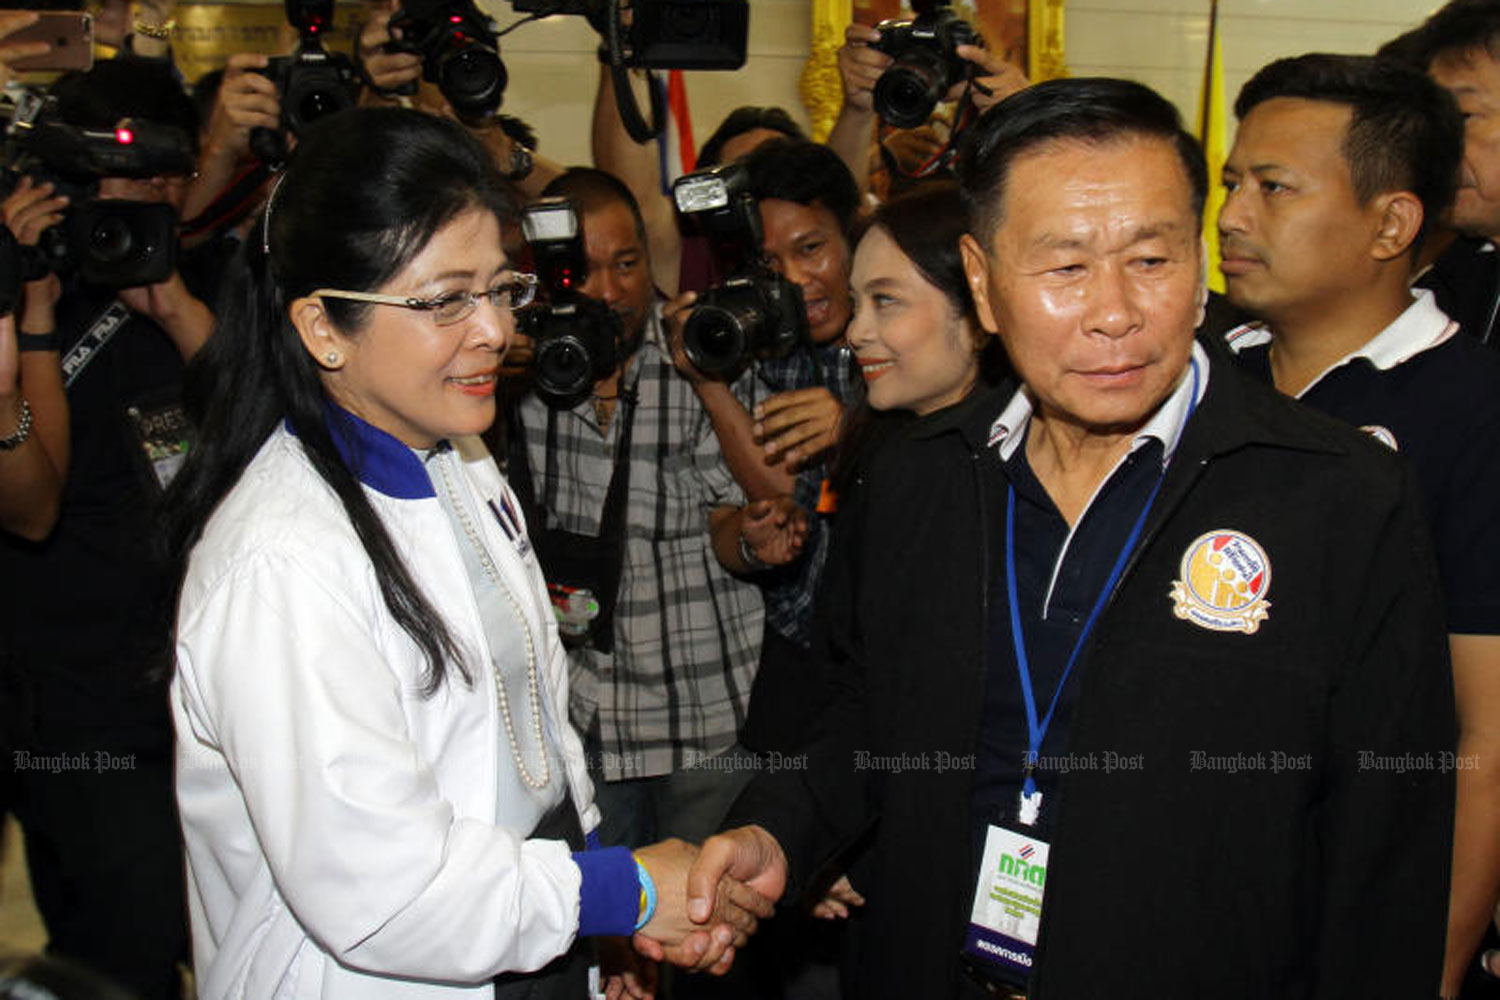 Seriruamthai Party leader Pol Gen Sereepisuth Temeeyaves, right, shakes hand with Pheu Thai key figure Khunying Sudarat Keyuraphan when they registered as party list candidates at the government complex in Bangkok in February. (Photo by Tawatchai Kemgumnerd)